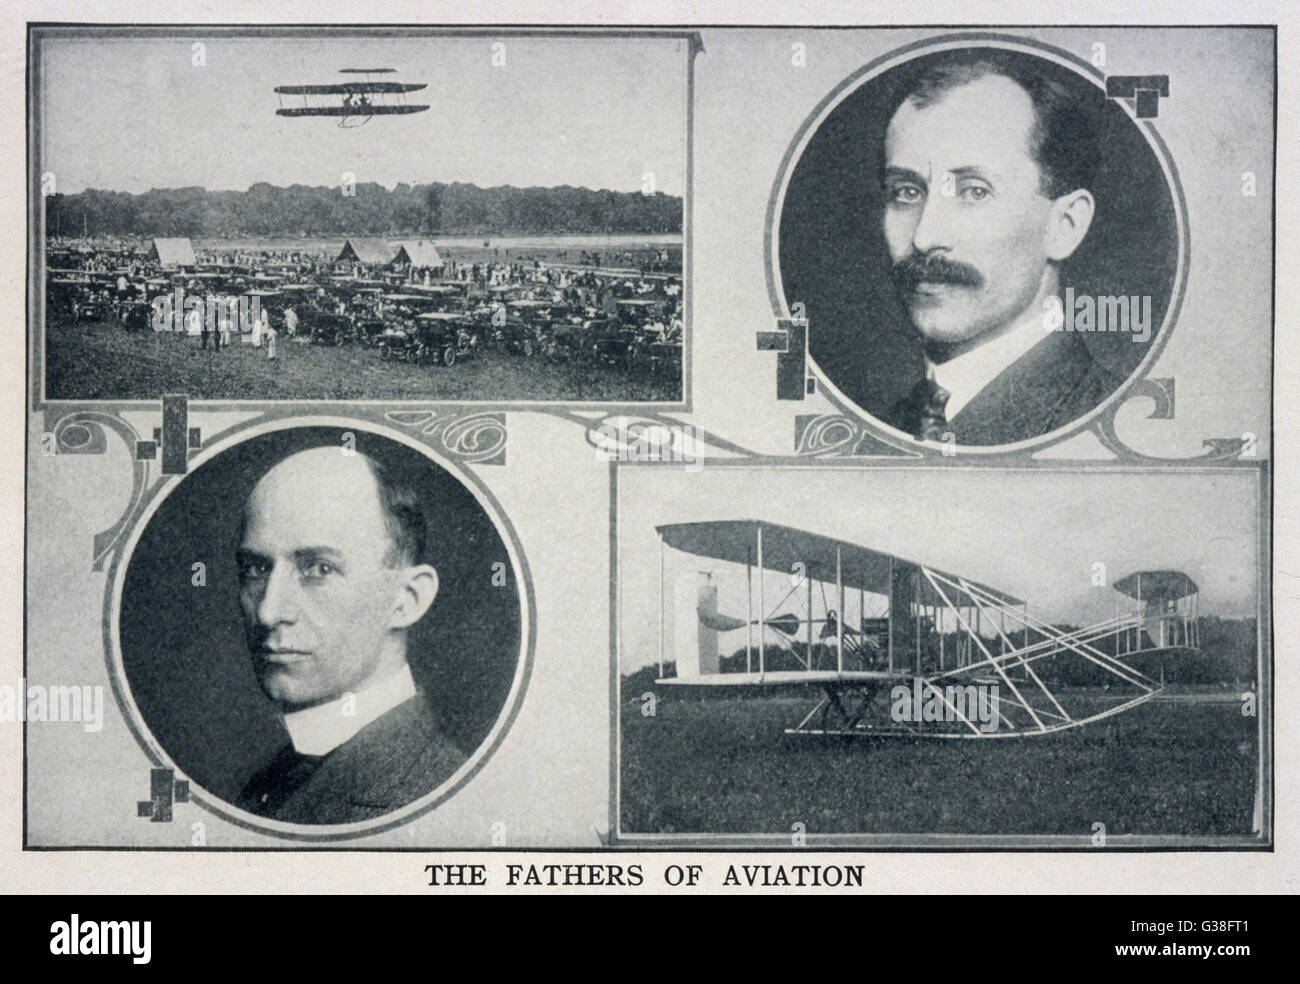 Portraits of Wilbur (left) and  Orville (right) Wright and  pictures of their planes. - Stock Image